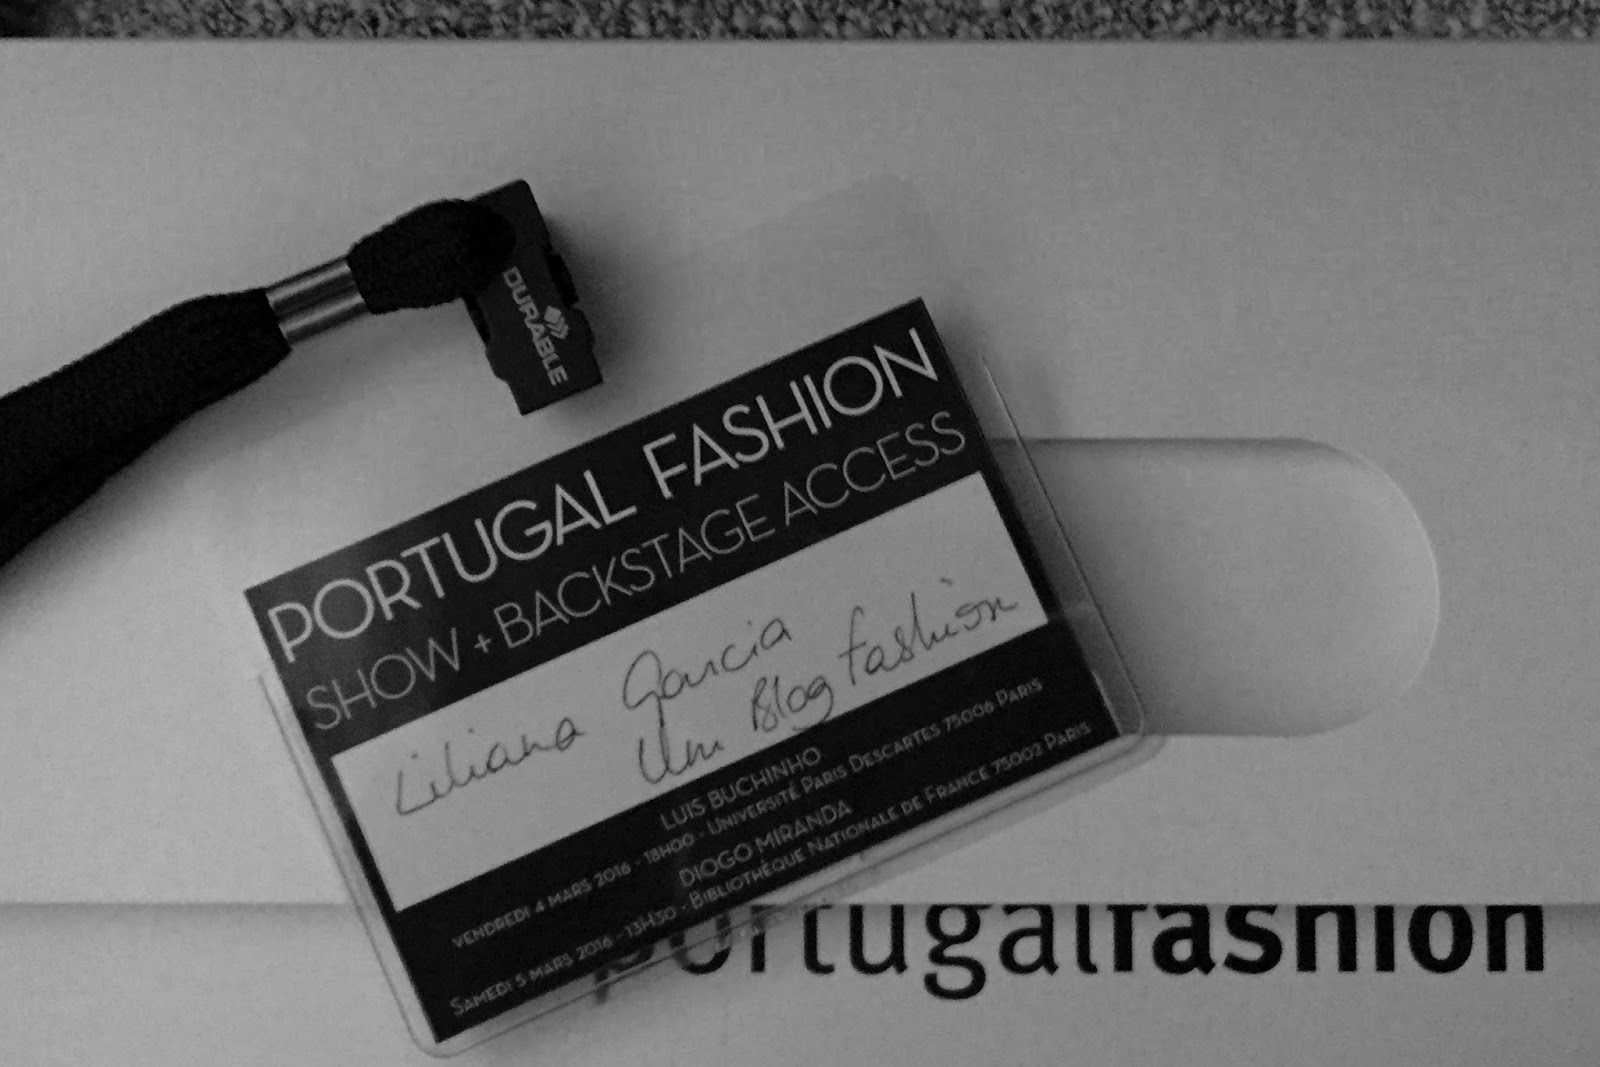 SHOW AND BACKSTAGE PORTUGAL FASHION #PFW